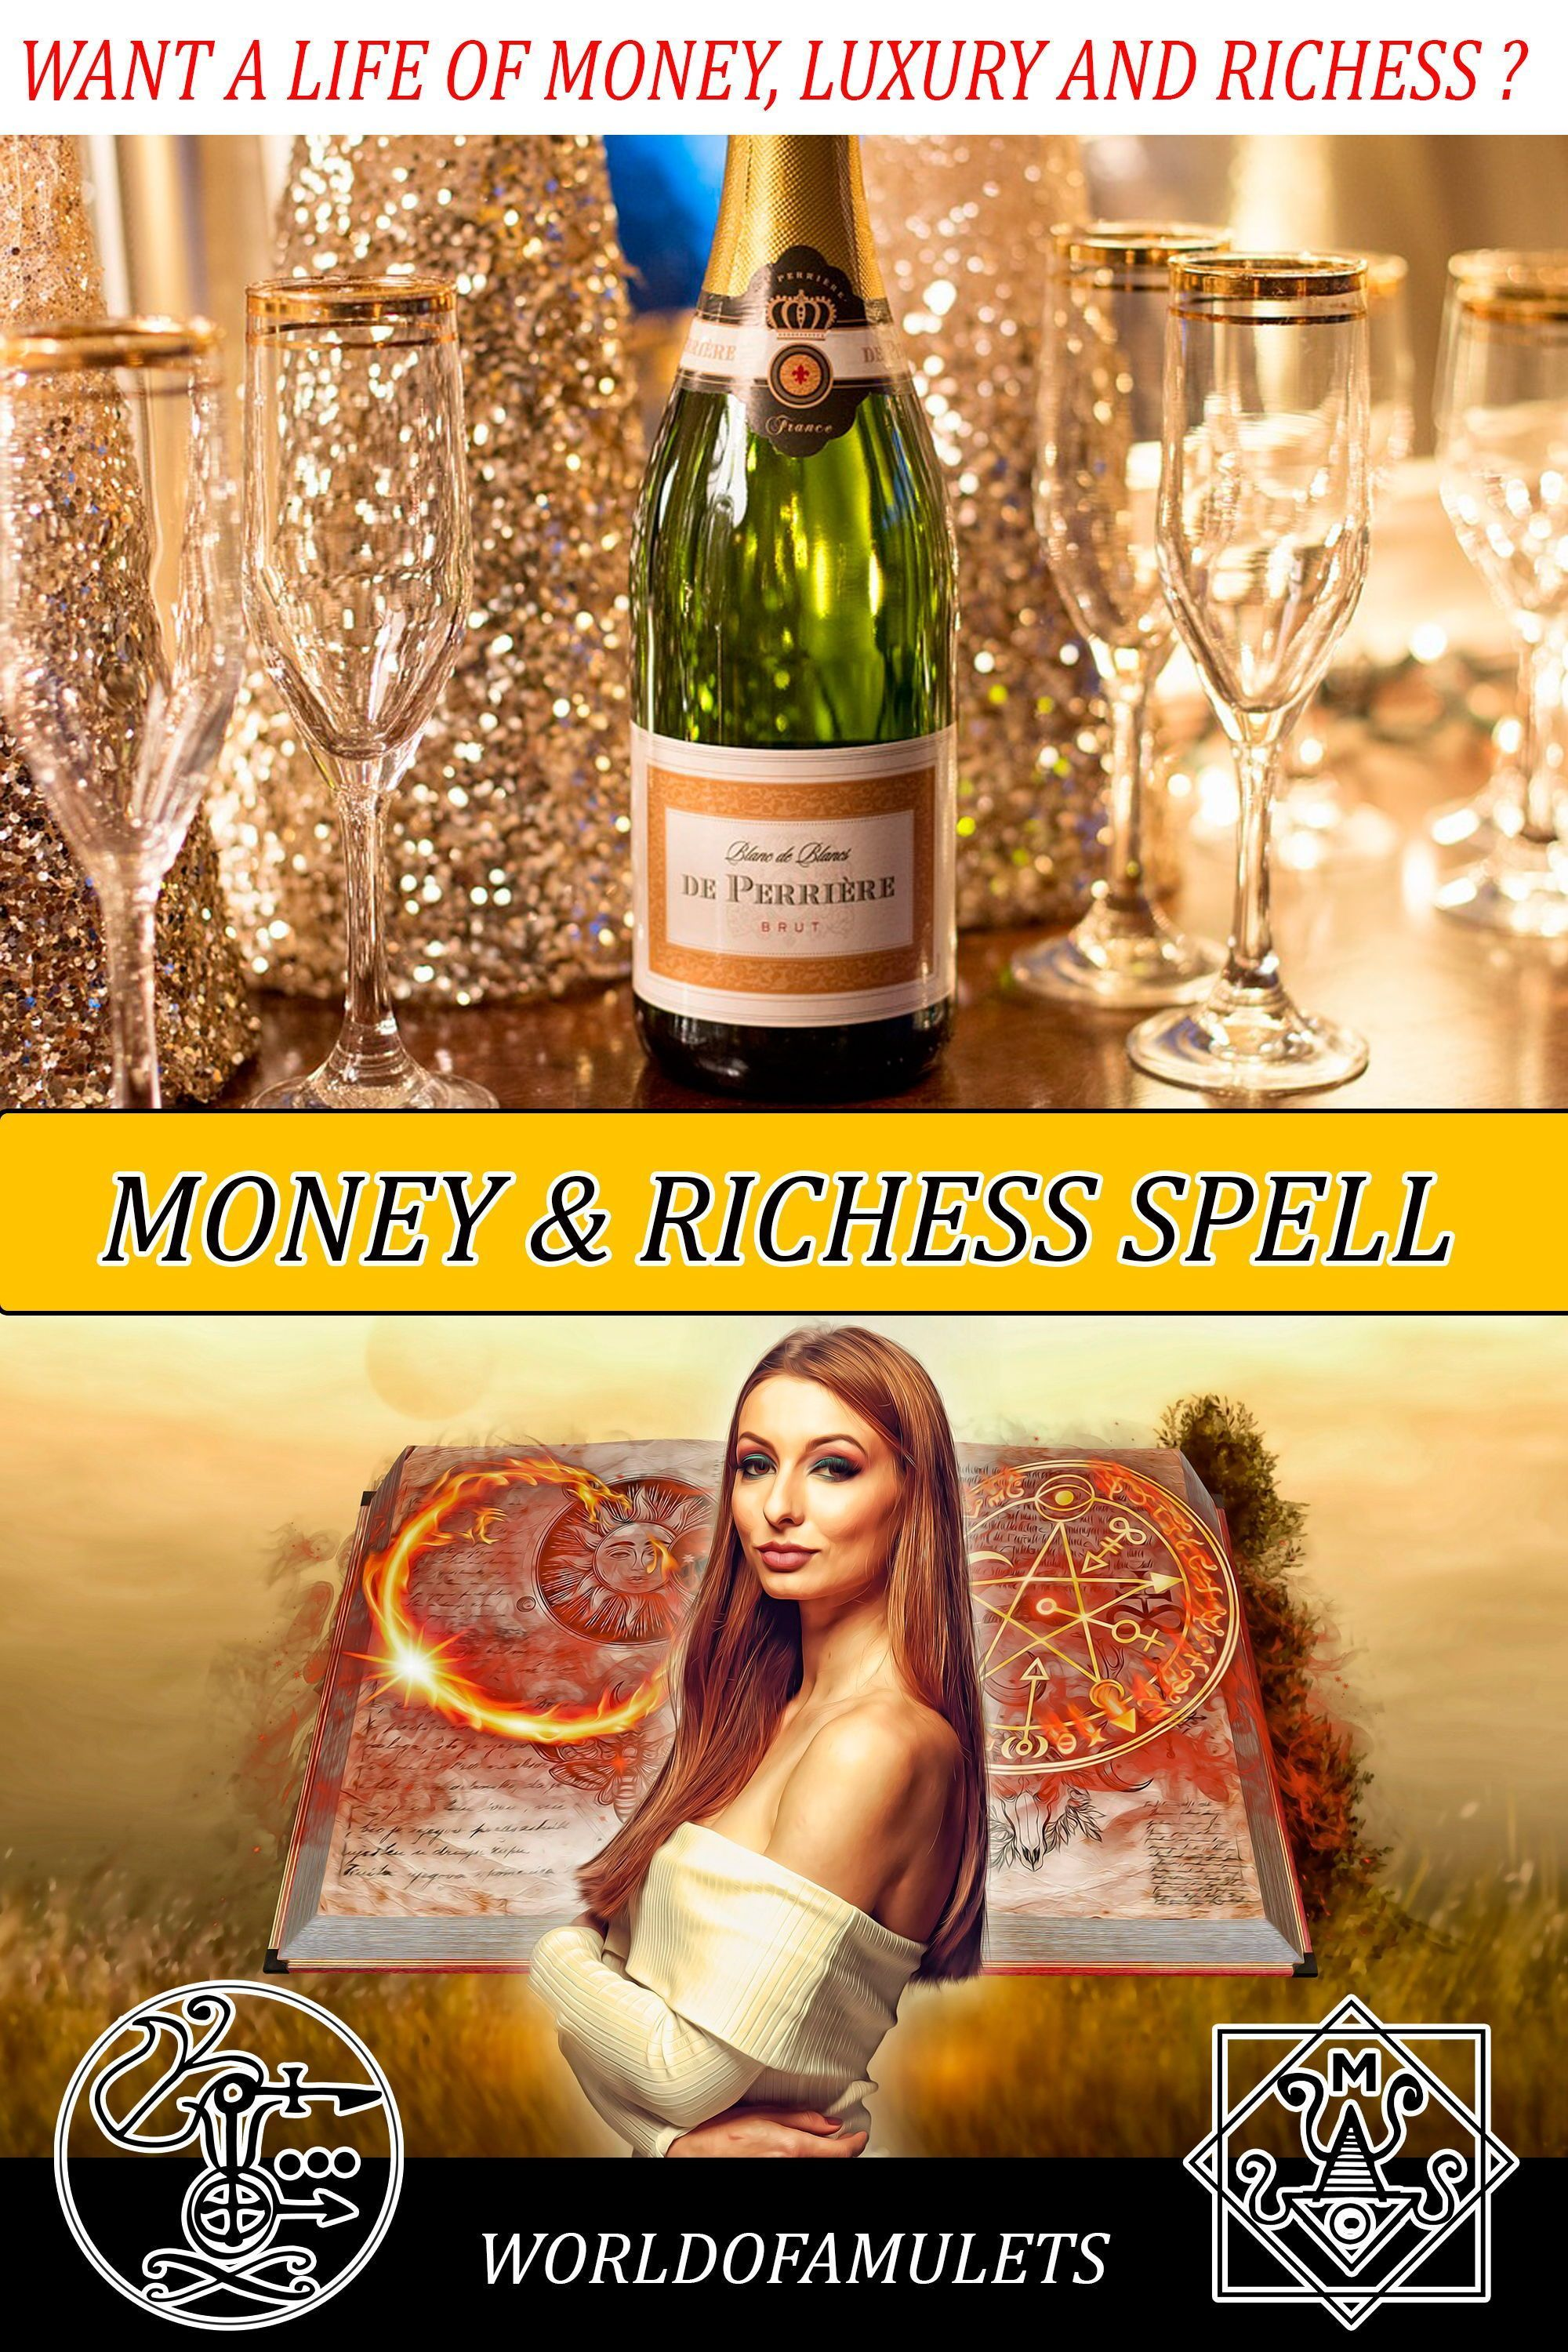 Witchcraft Wealth and Money Spell with Baal School of witchcraft and Wizardry School Beginner Witchcraft Spells #moneyspells Want a life of richess, money, wealth, expensive jewelry, luxury cars and homes and dream vacations?  Our Money Spell can make this true. Check the reviews  #money #spell #wealth #richess #moneyspell Witchcraft Wealth and Money Spell with Baal School of witchcraft and Wizardry School Beginner Witchcraft Spells #moneyspells Want a life of richess, money, wealth, expensive j #moneyspells